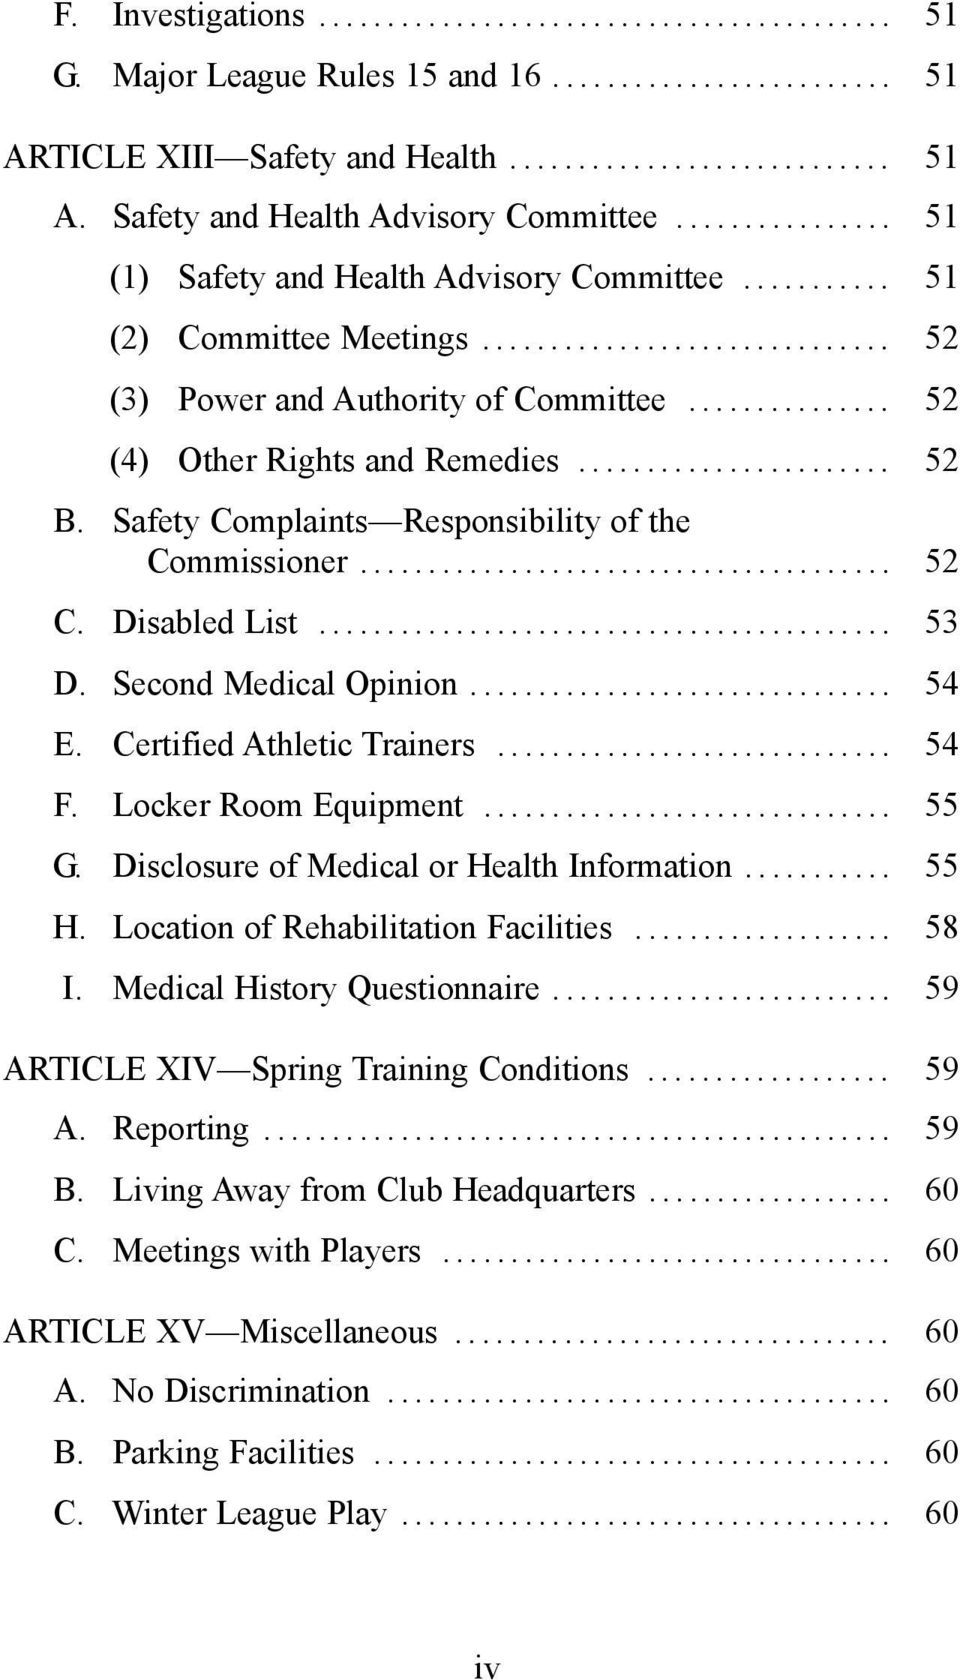 Second Medical Opinion... 54 E. Certified Athletic Trainers... 54 F. Locker Room Equipment... 55 G. Disclosure of Medical or Health Information... 55 H. Location of Rehabilitation Facilities... 58 I.